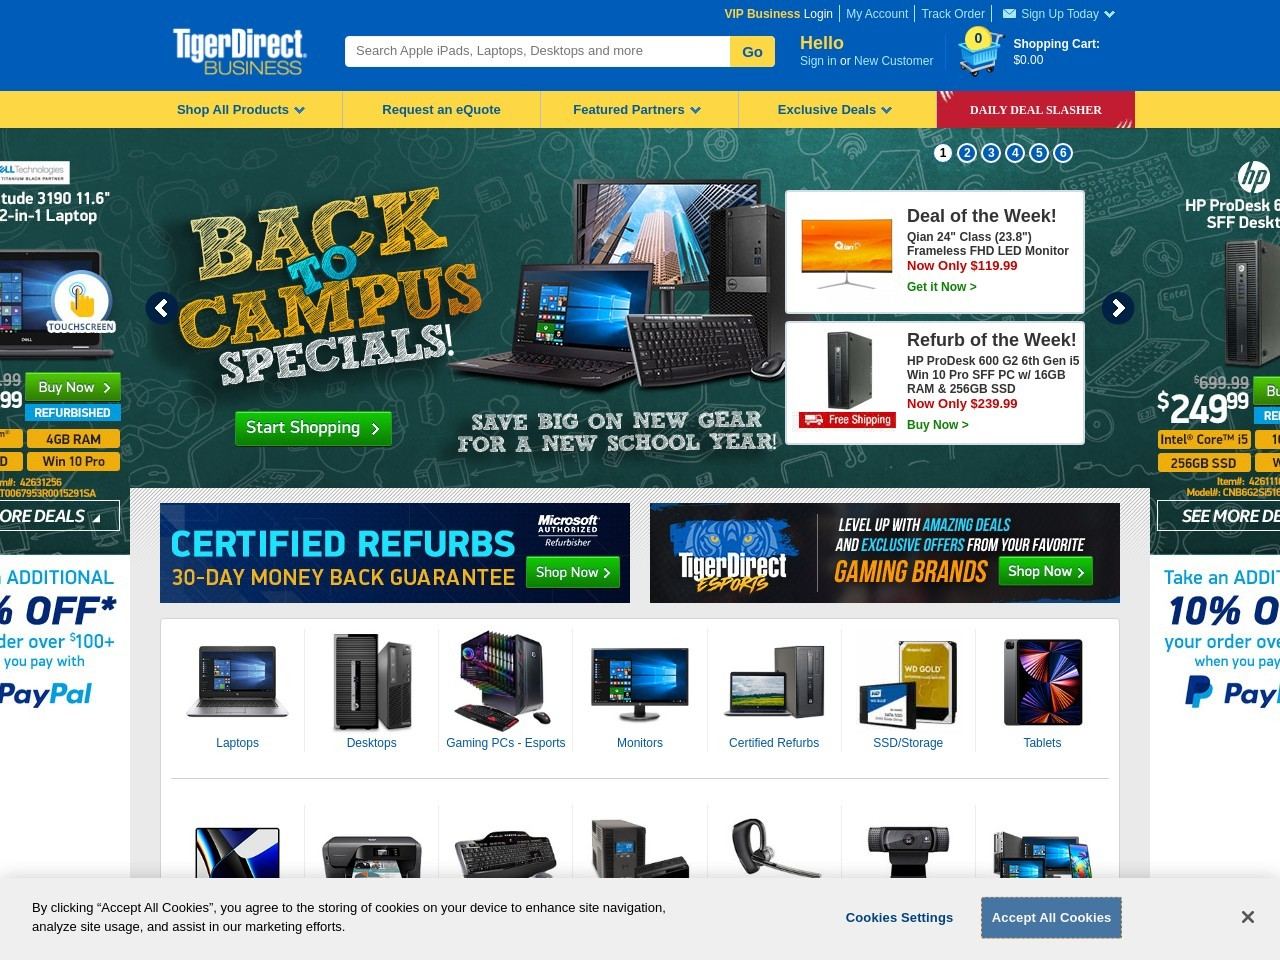 http://www.tigerdirect.com/applications/campaigns/deals.asp?campaignid=2557